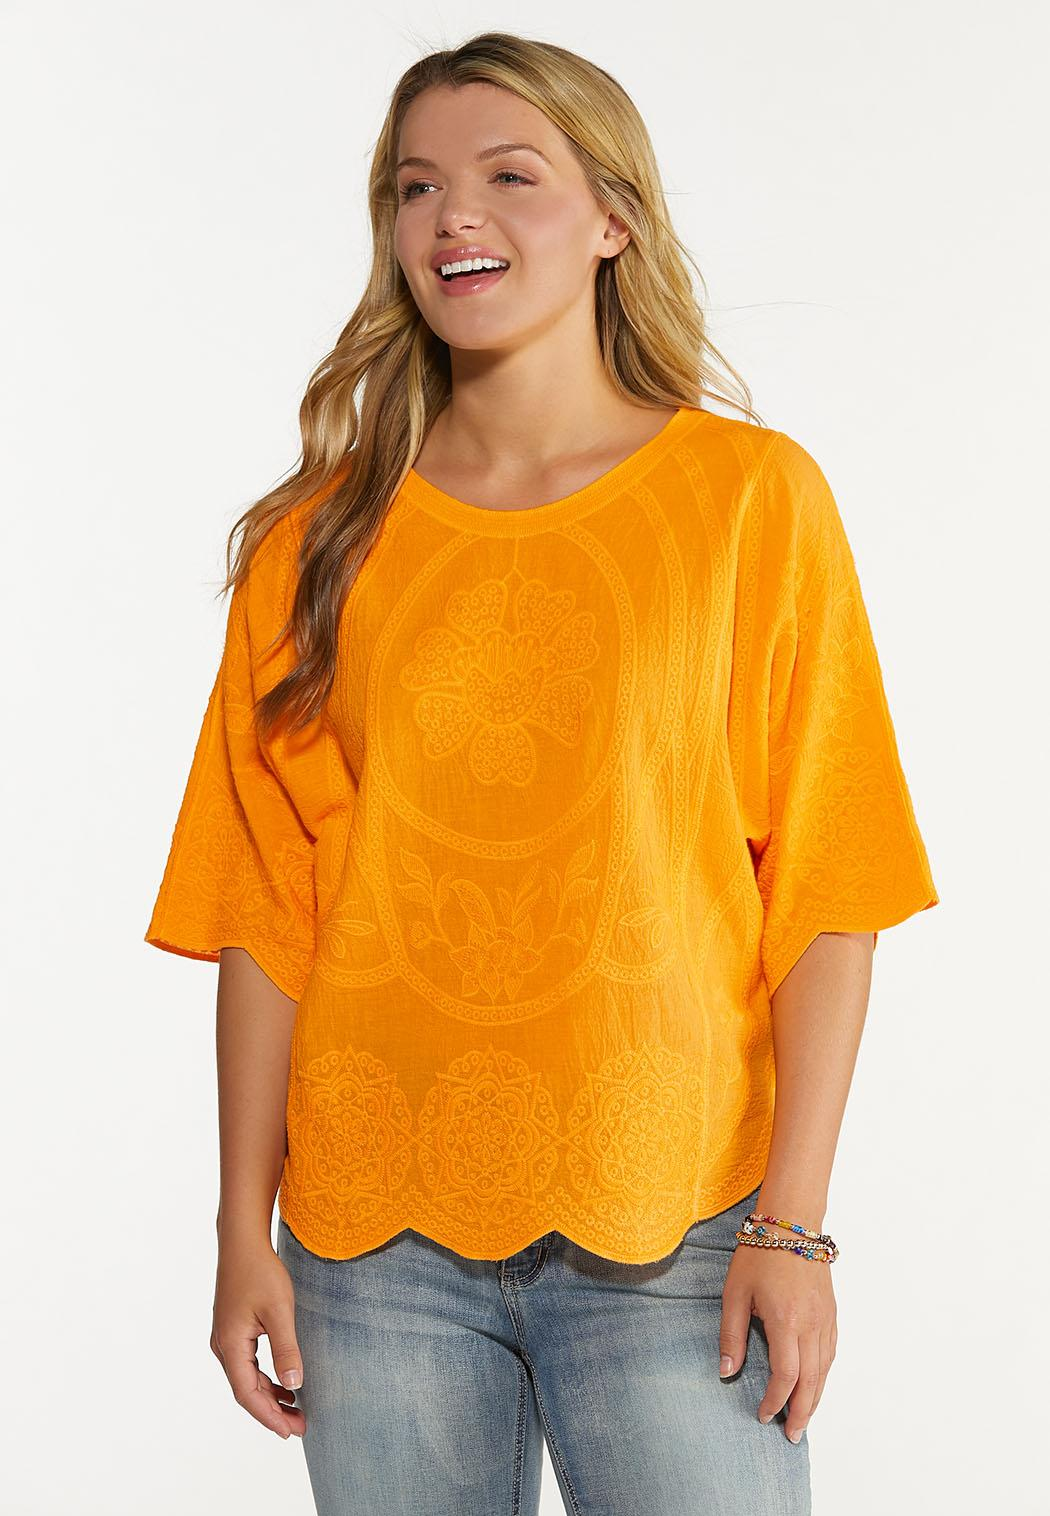 Embroidered Scalloped Top